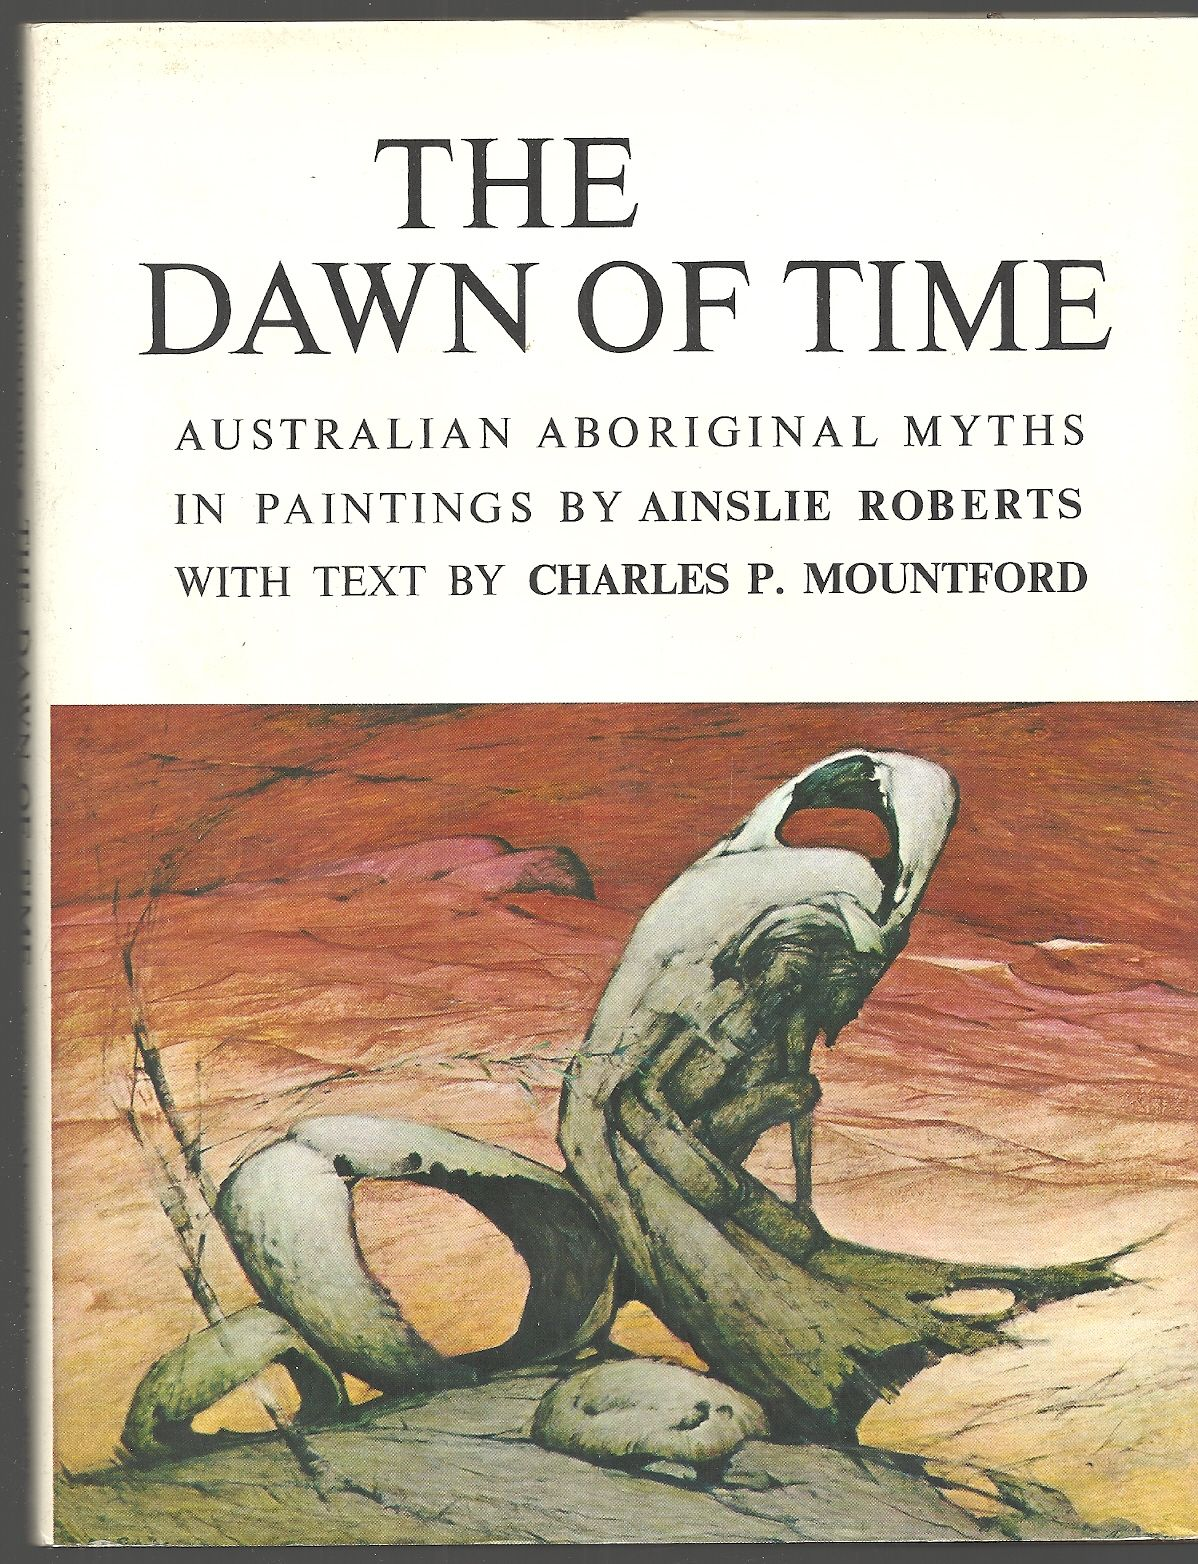 The Dawn of Time: Australian Aboringinal Myths in Paintings, Charles P. Mountford